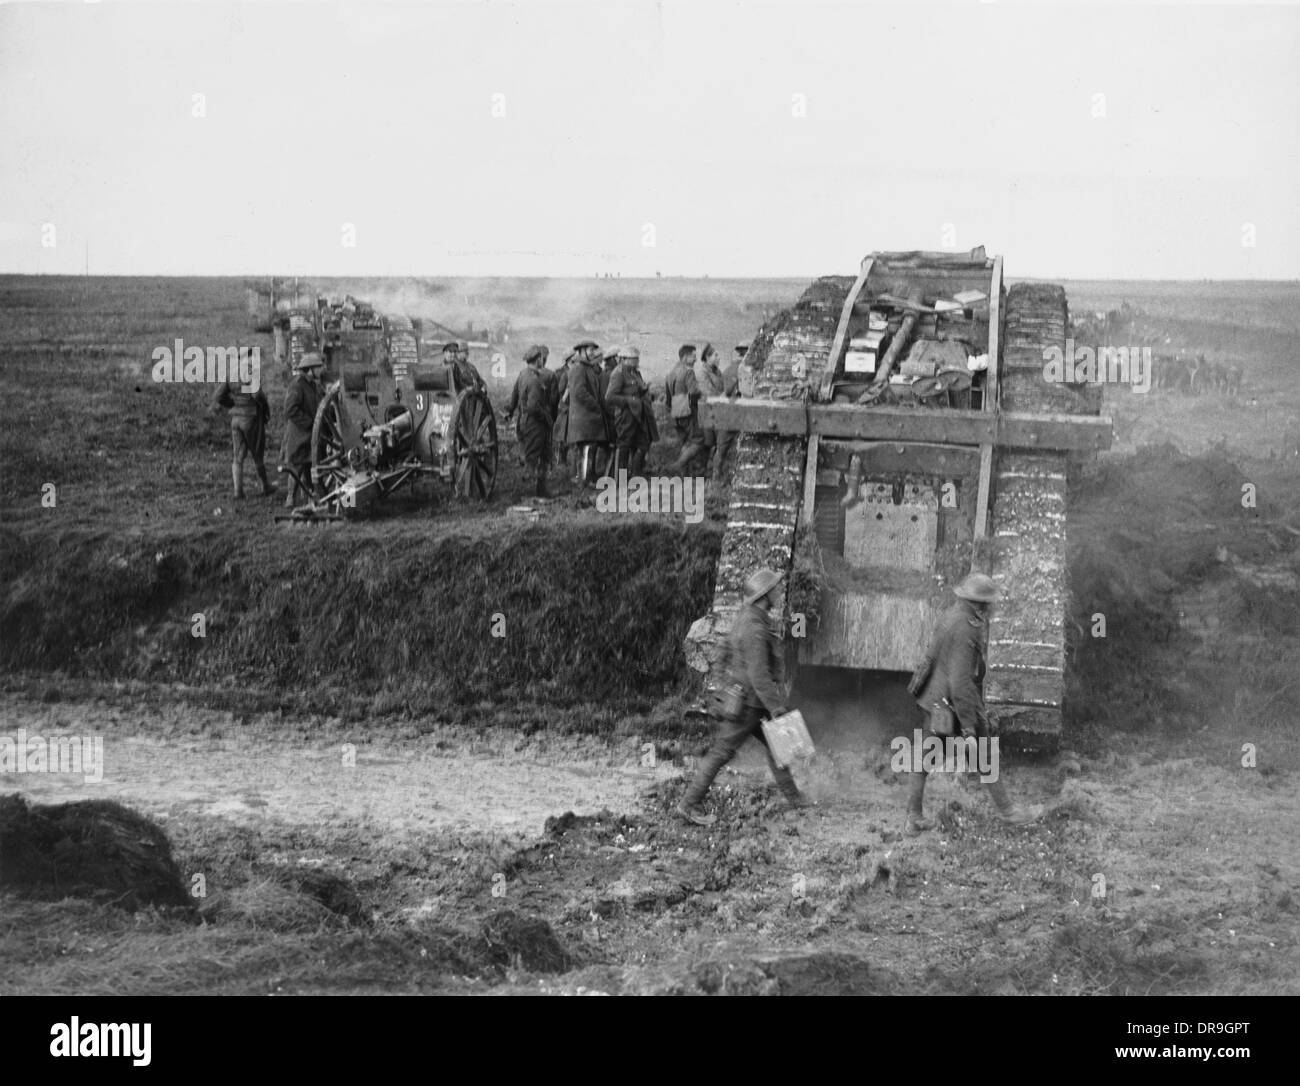 the battle of cambrai 1917 The battle of cambrai 1917, was a british offensive against the german troops located near cambrai in france the battle remained indecisive but served in establishing the efficacy of the.